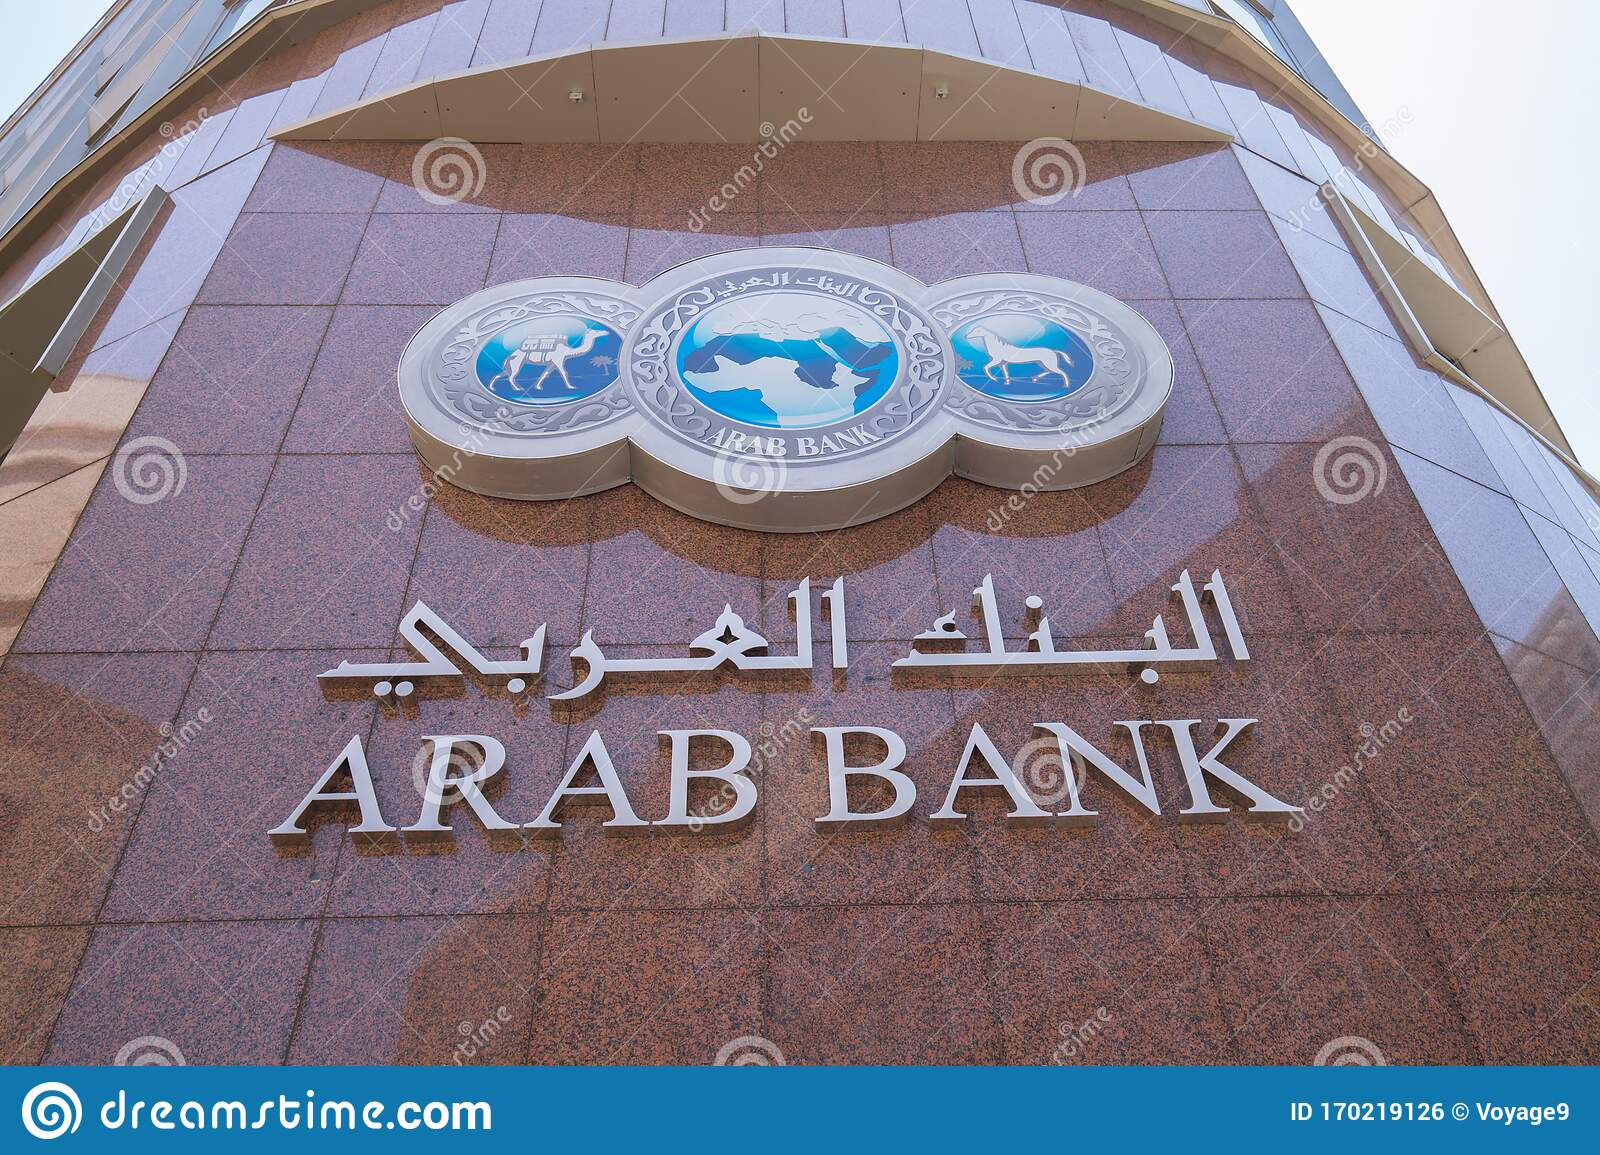 Egyptian Fintechs Can Benefit from Arab Bank's AB Accelerator Funding Program